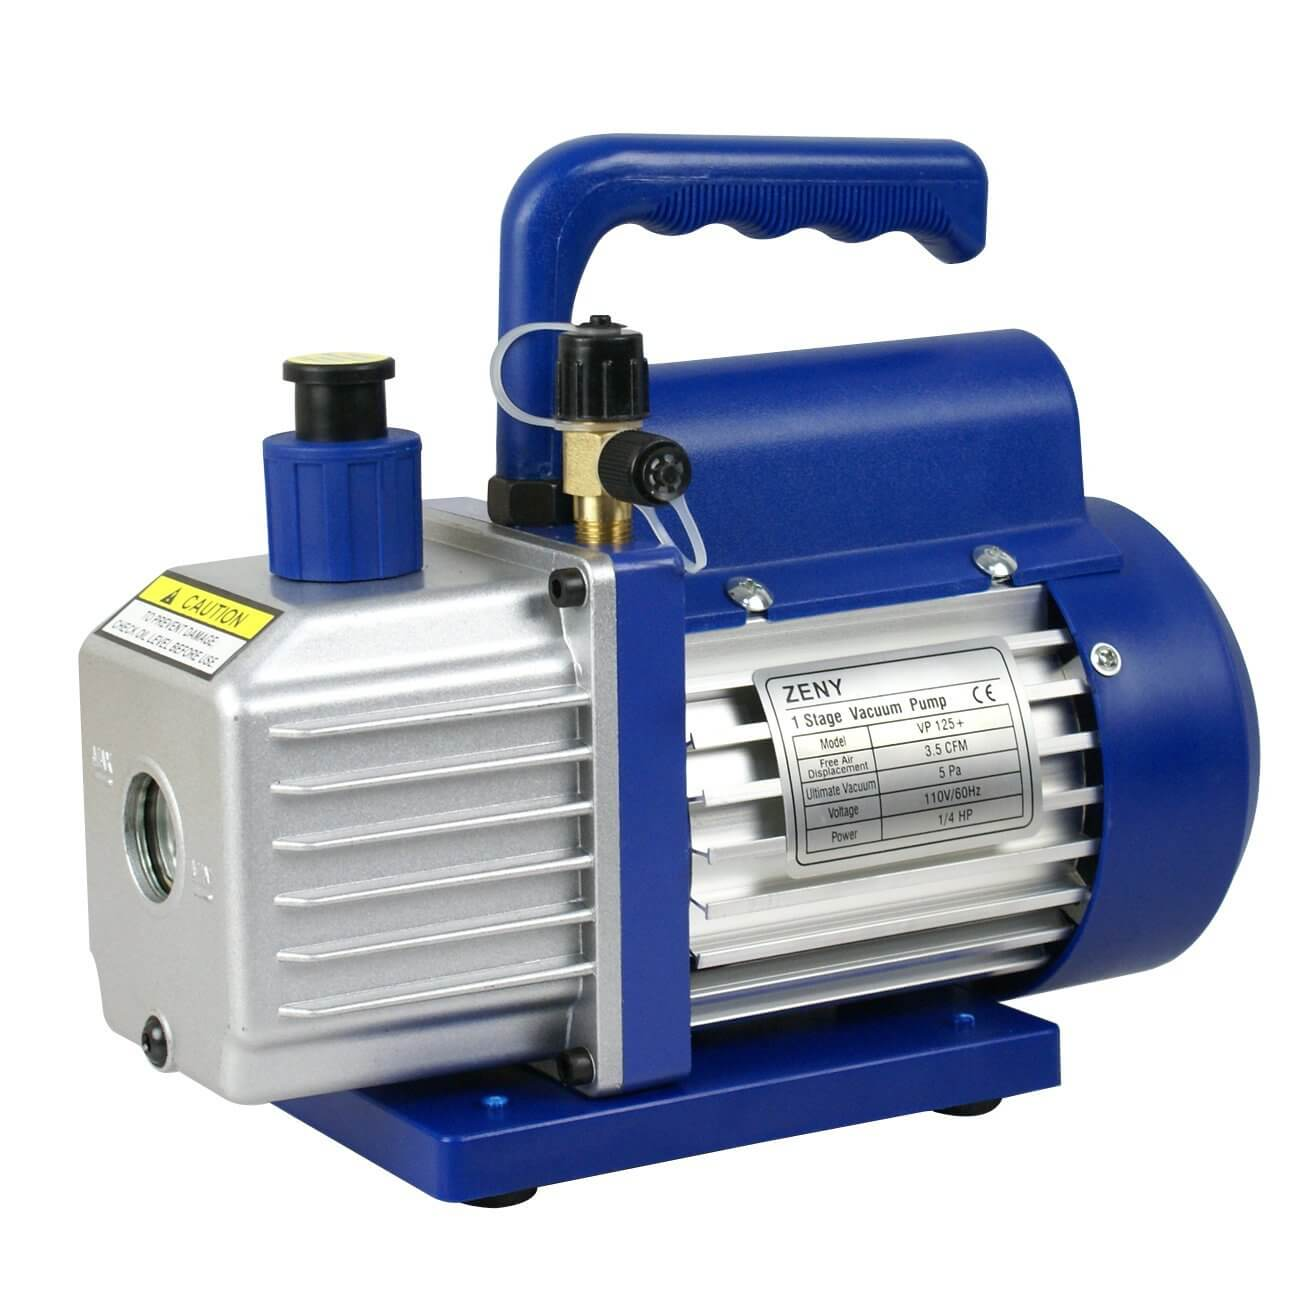 Zeny 3.5CFM Single-Stage 5 Pa Rotary Vane Economy Vacuum Pump